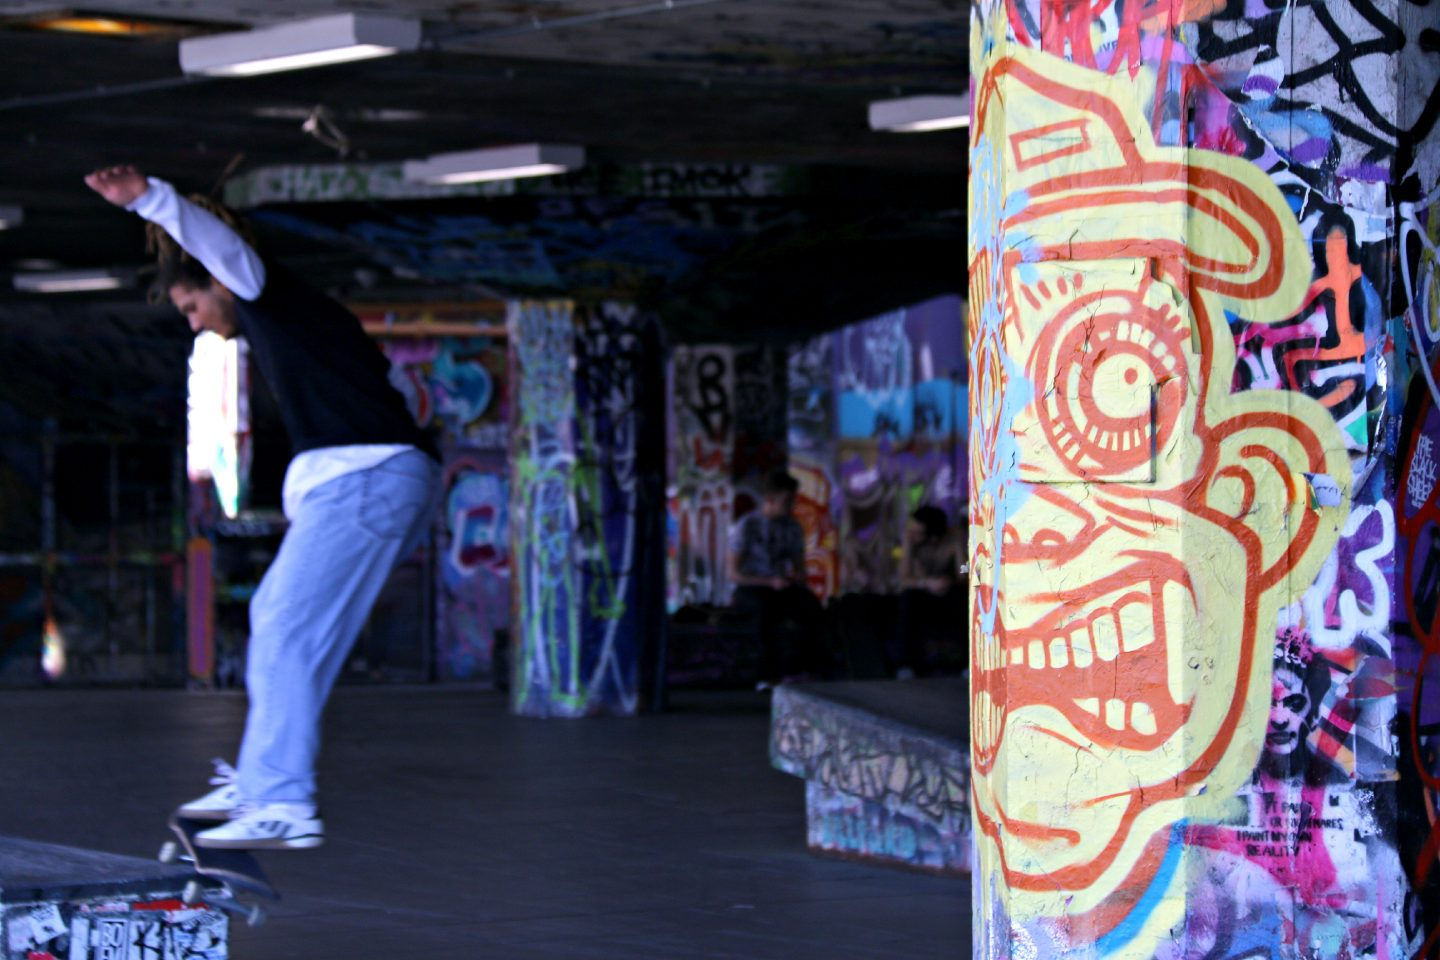 London Southbank skateboard park